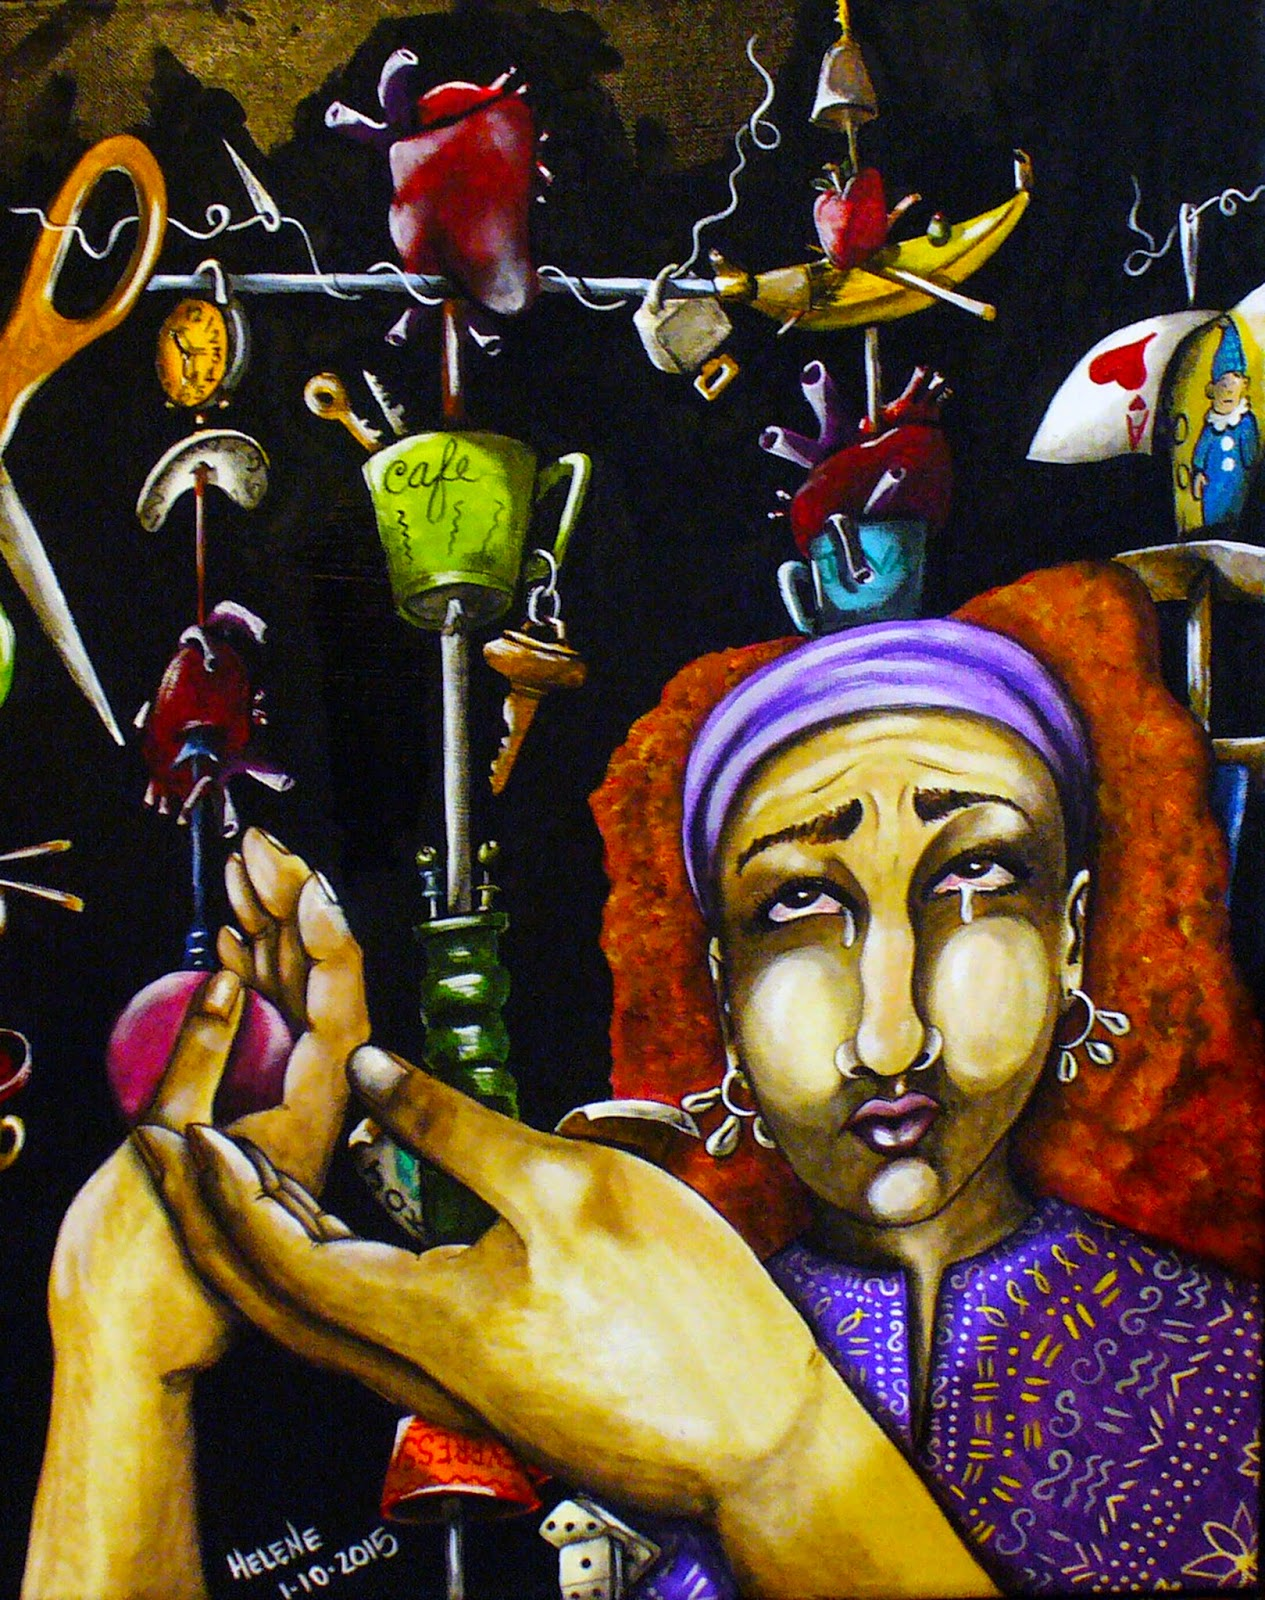 Hands reaching up in busy background seeming to juggle or grasp for many cluttered objects lady looking up sadly black background acrylic painting